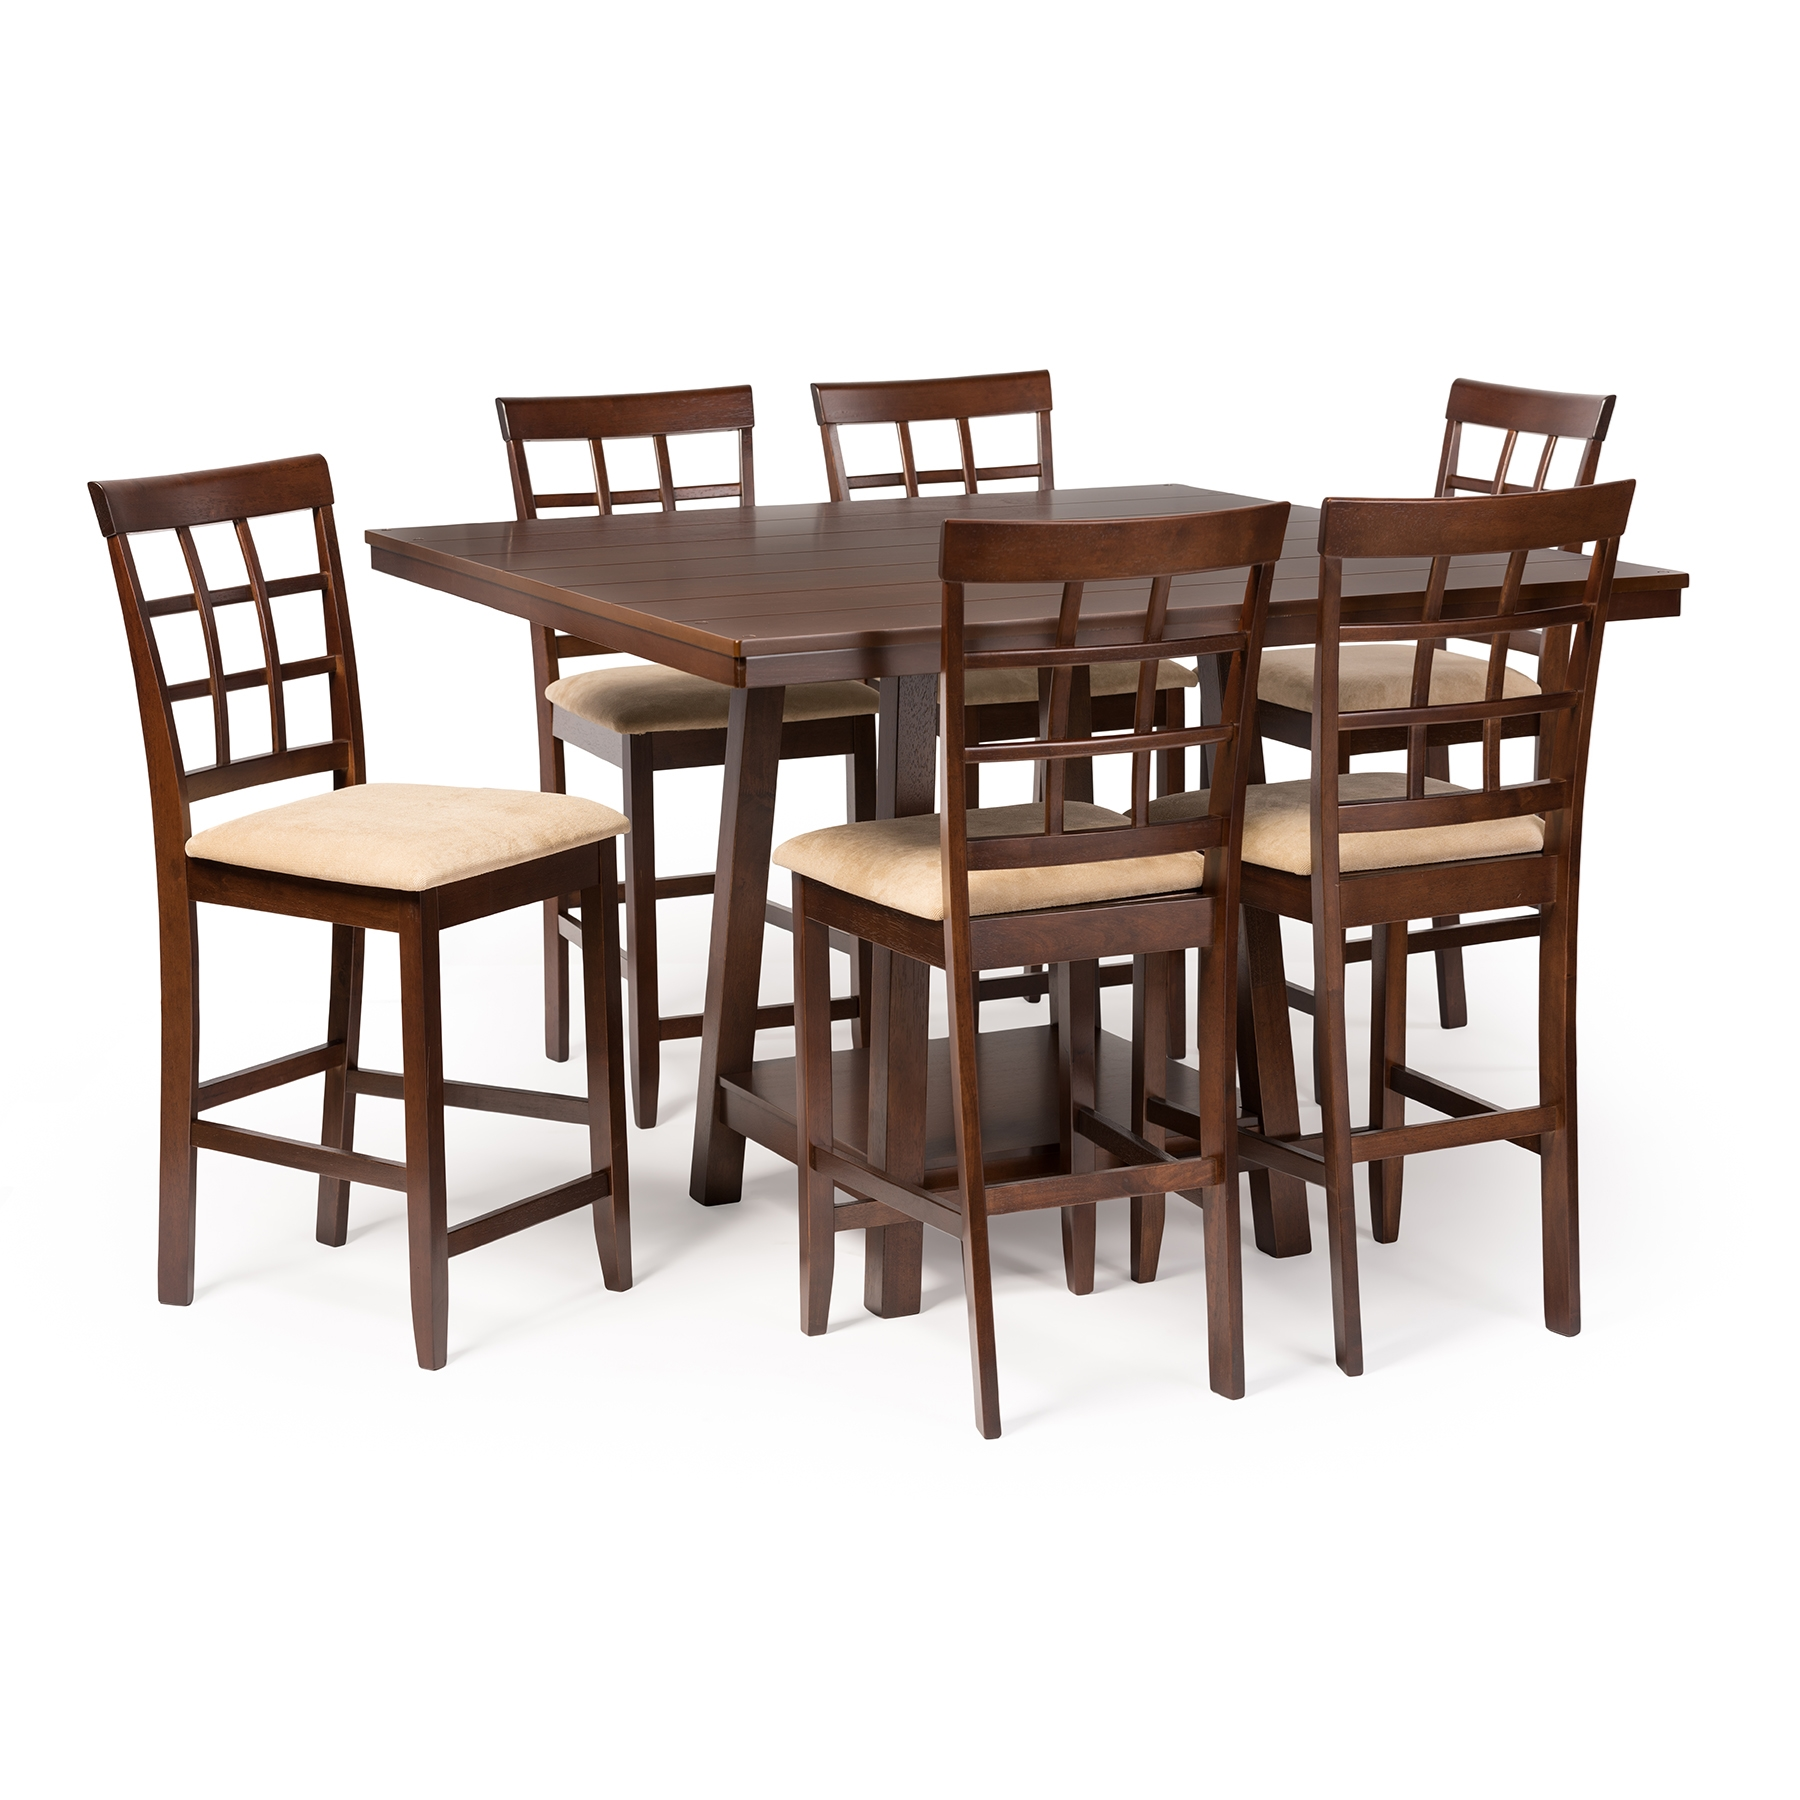 Baxton Studio Katelyn Modern Pub Table Set   7 Piece Modern Dining Set    IEPCH 5050SQ ...